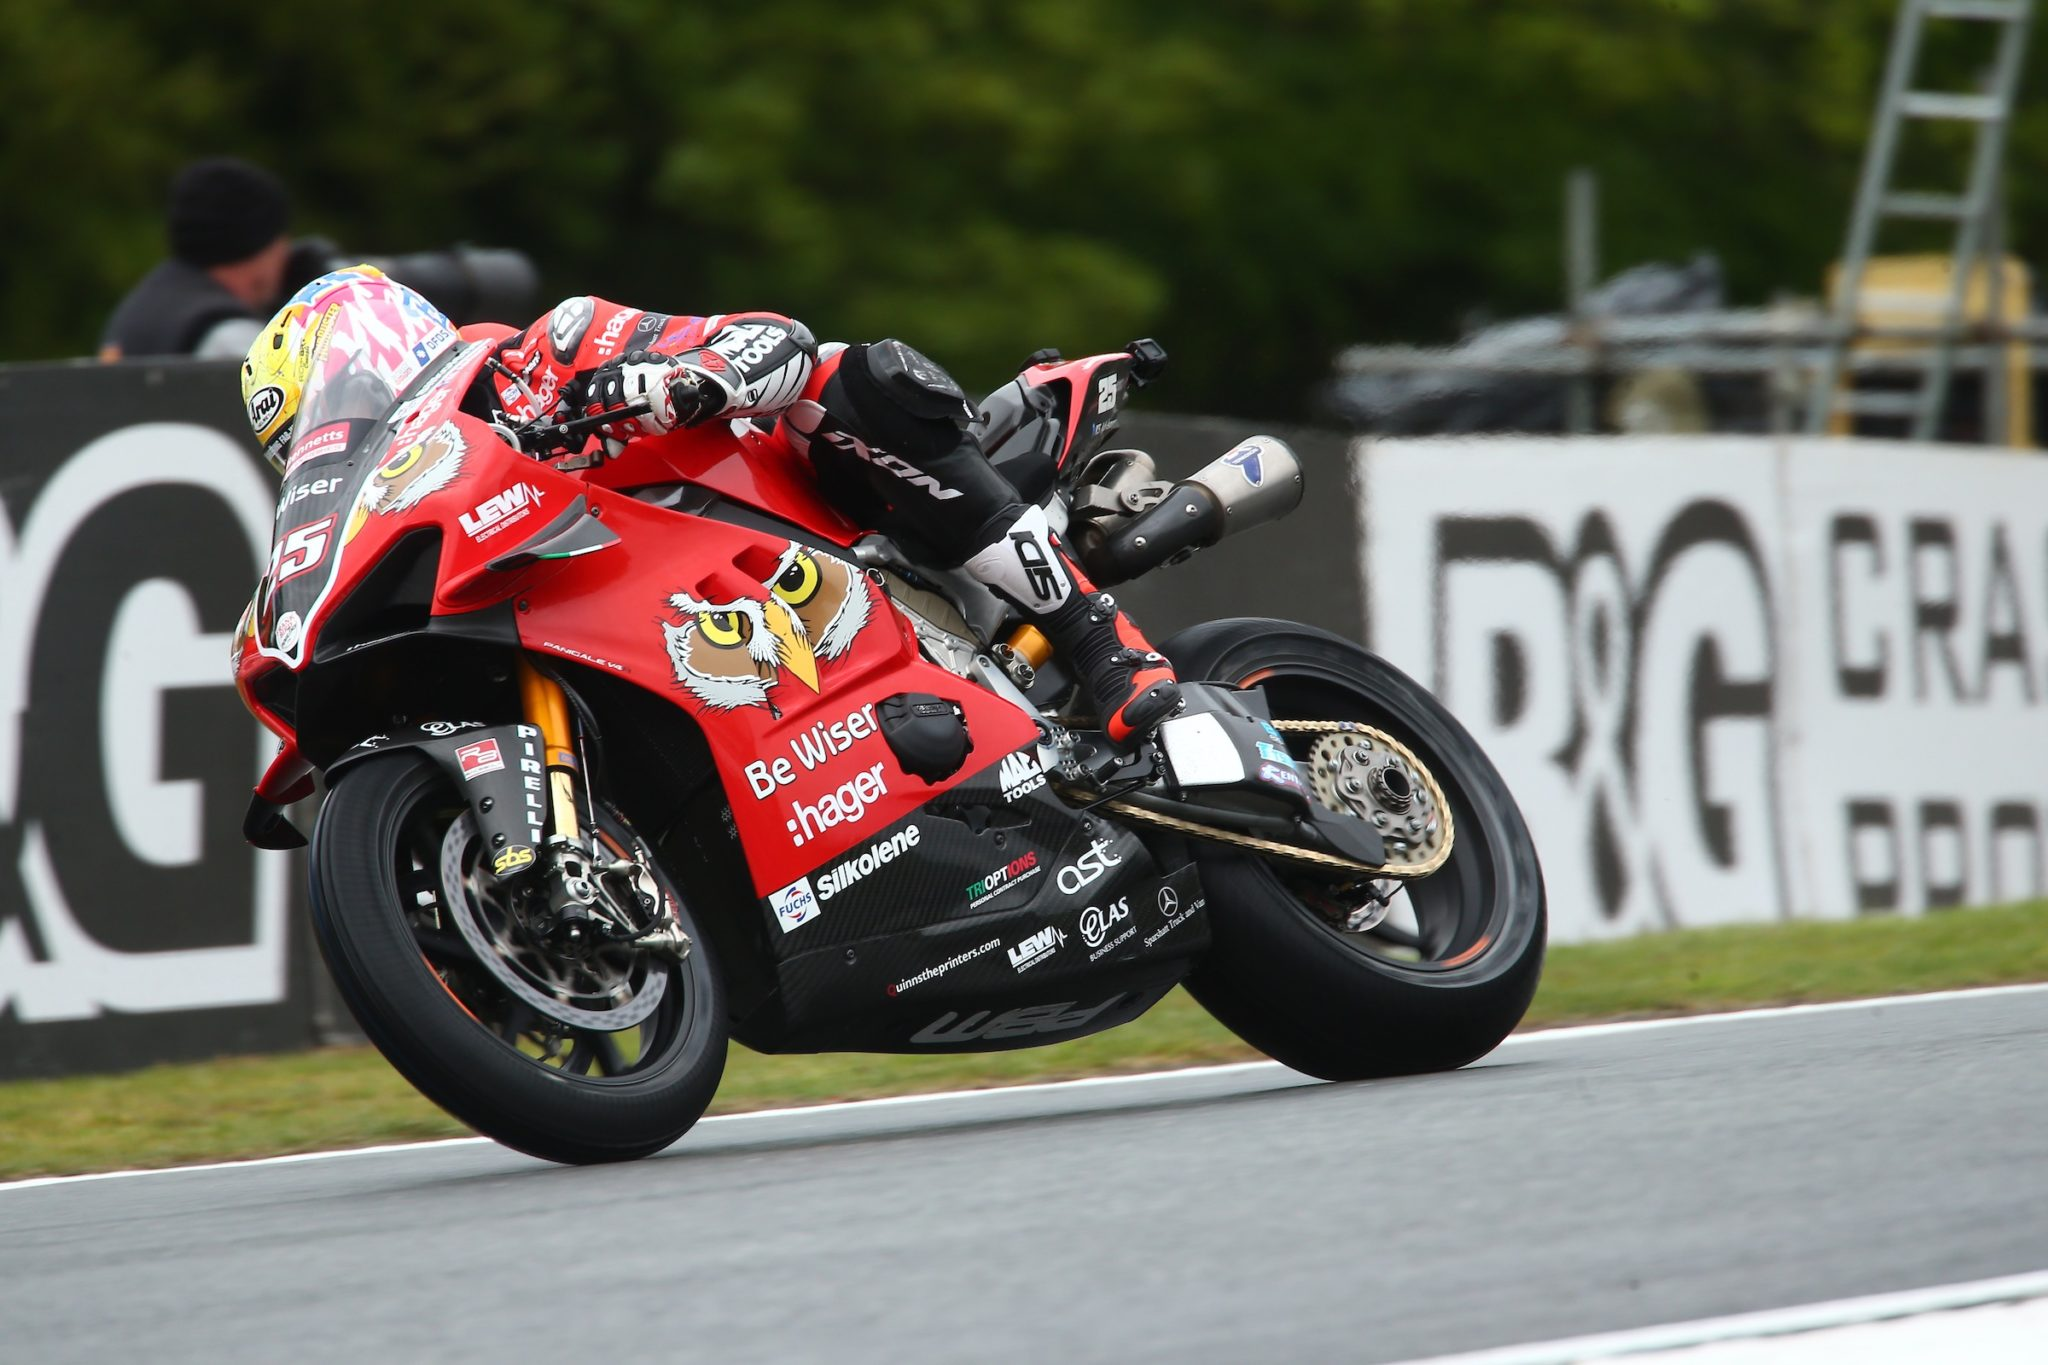 Brookes on his way to a win credit Double Red